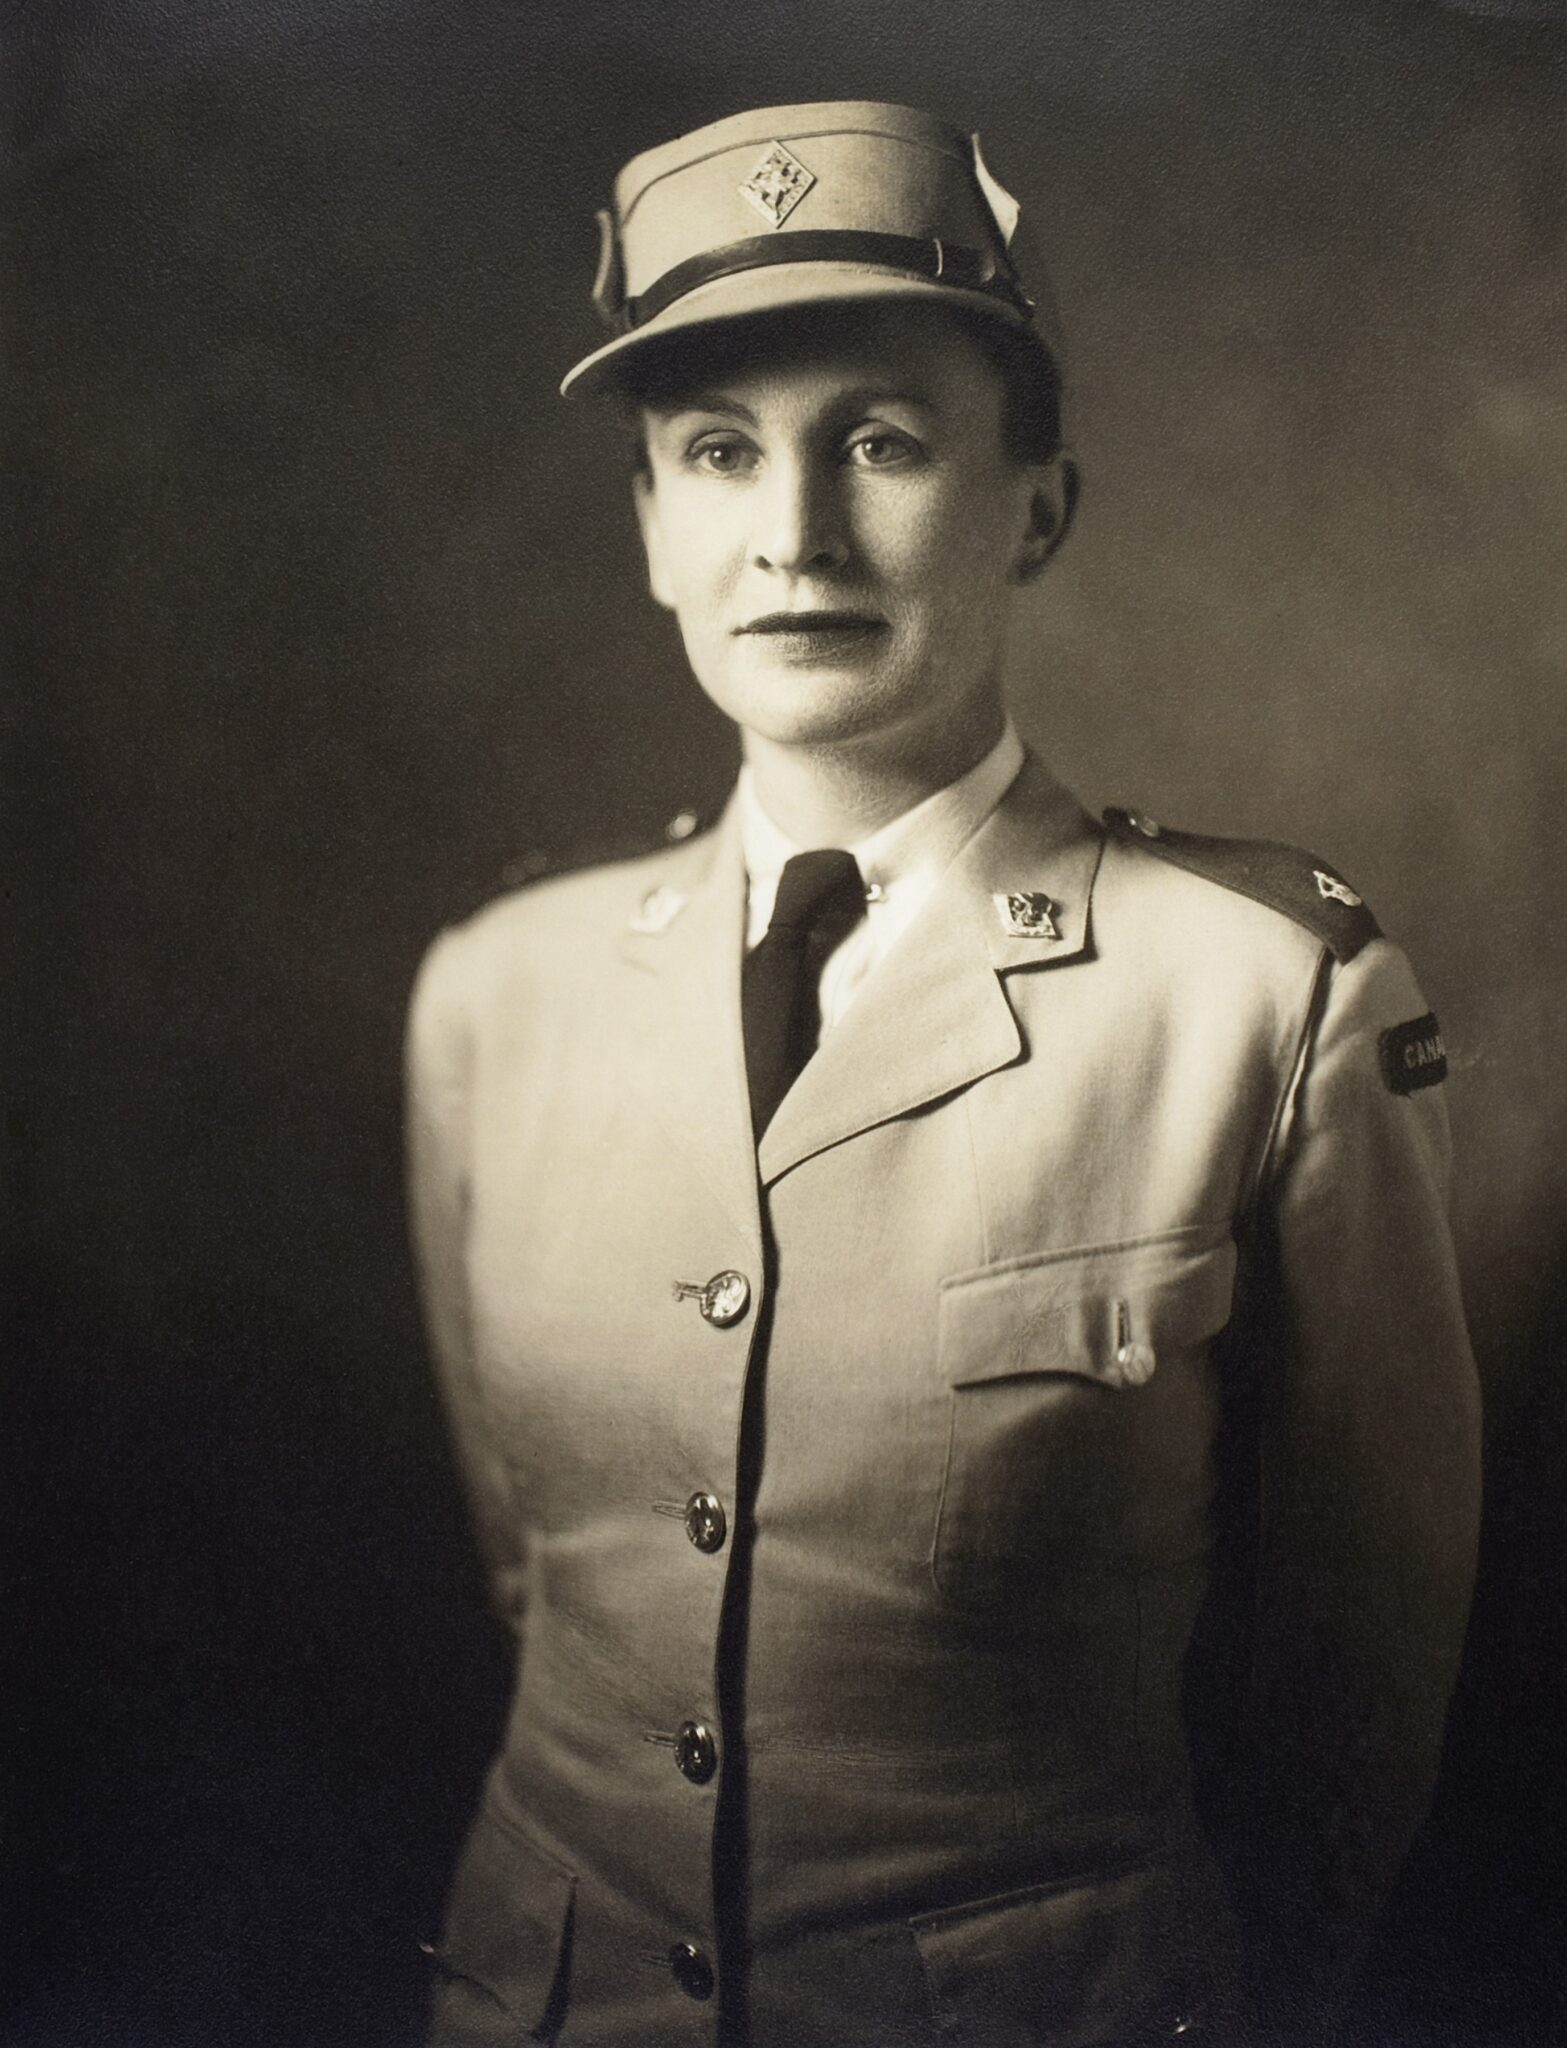 Black and white portrait image of woman in military uniform,1948